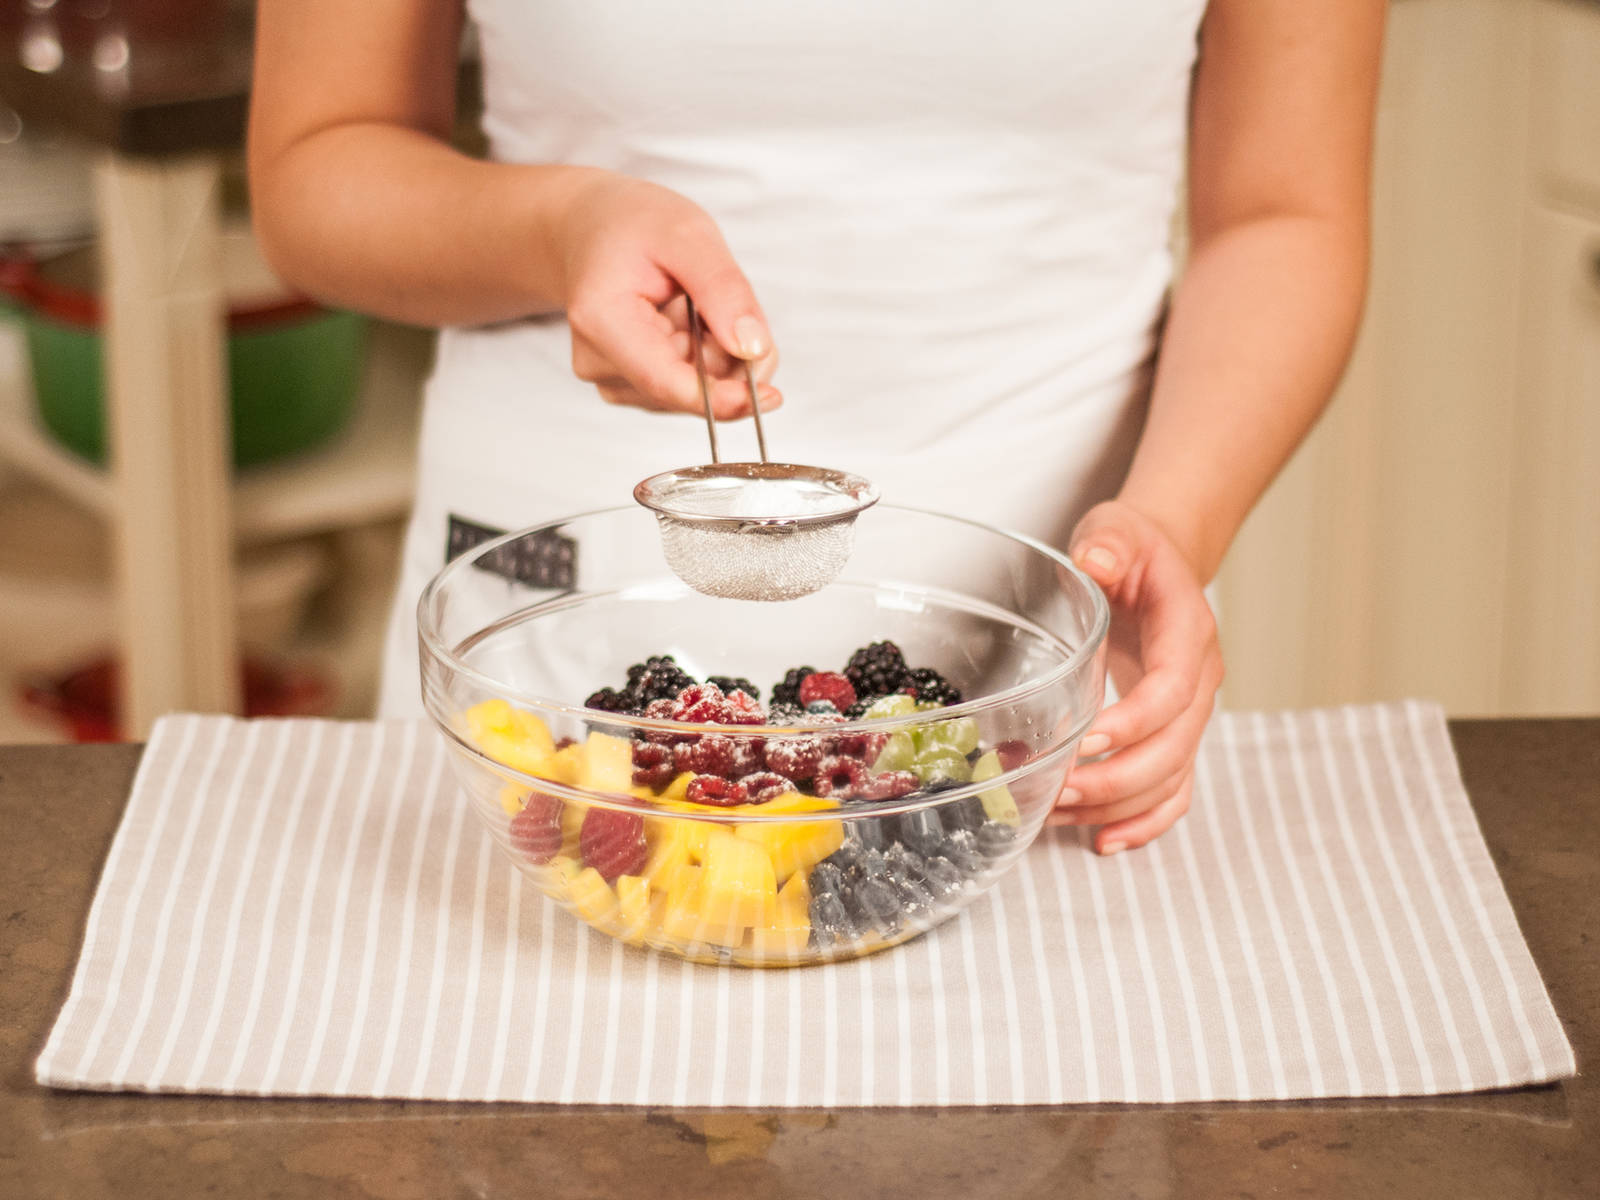 Transfer all fruit to a large bowl. Juice lemon and add to fruit salad, as well as sifted confectioner's sugar. Mix well.